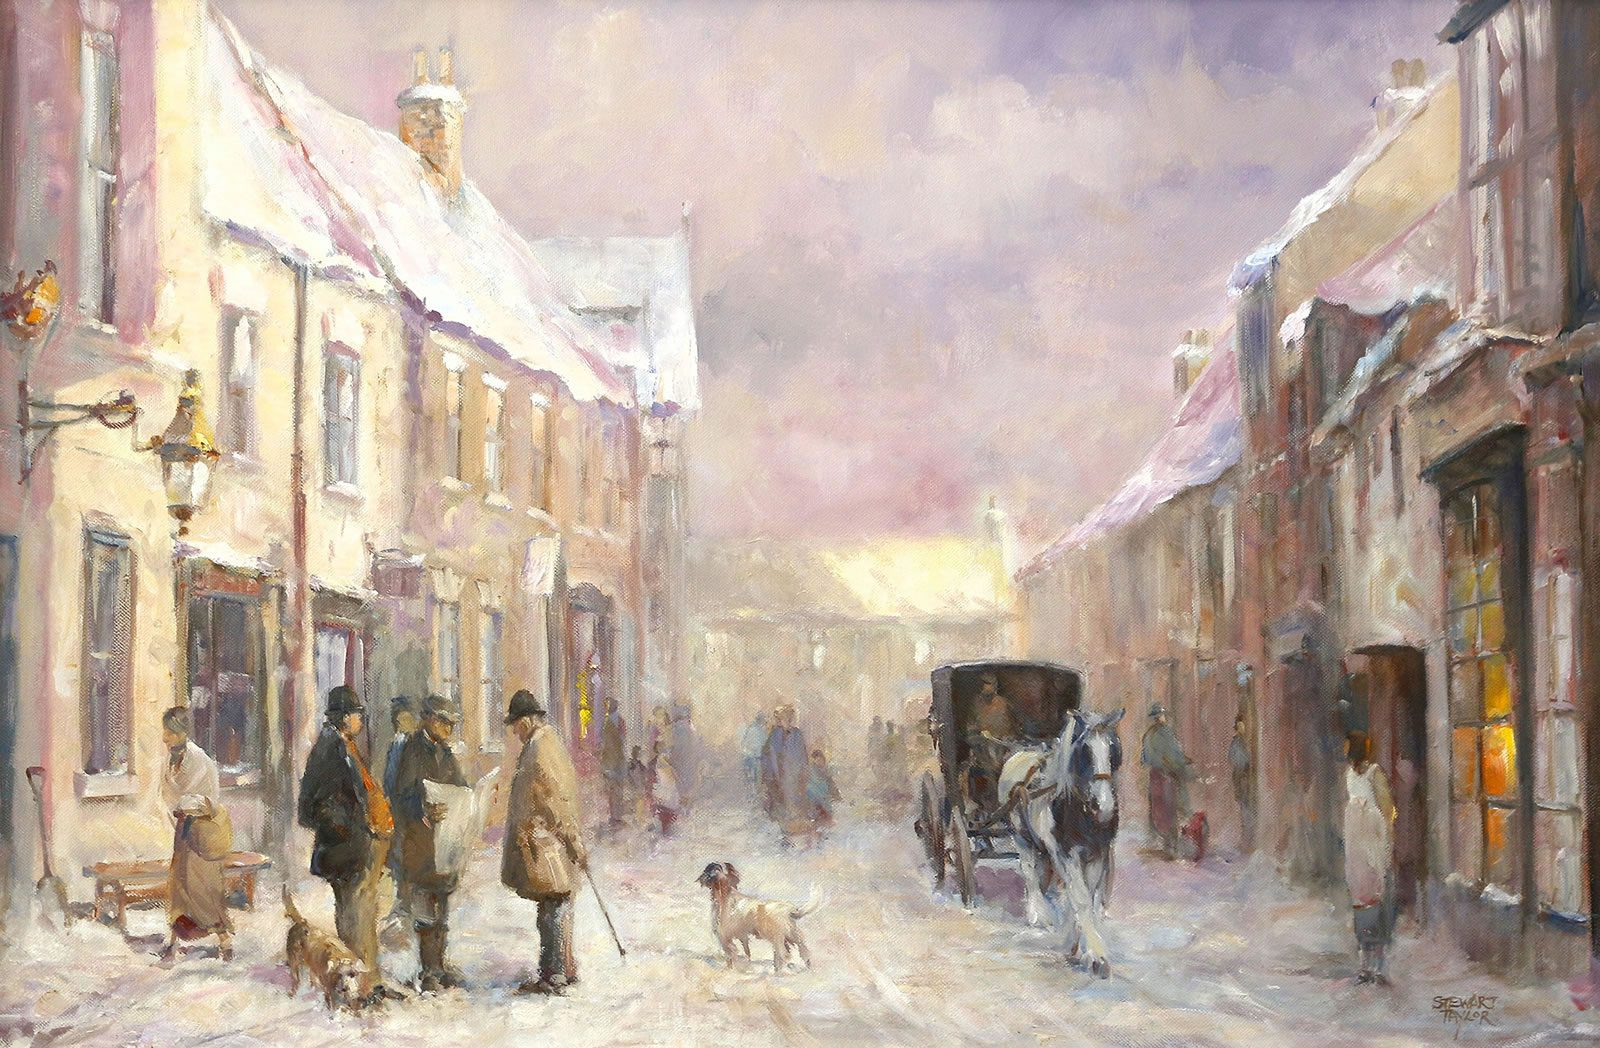 Historic winter scene in Hedon painted in oils